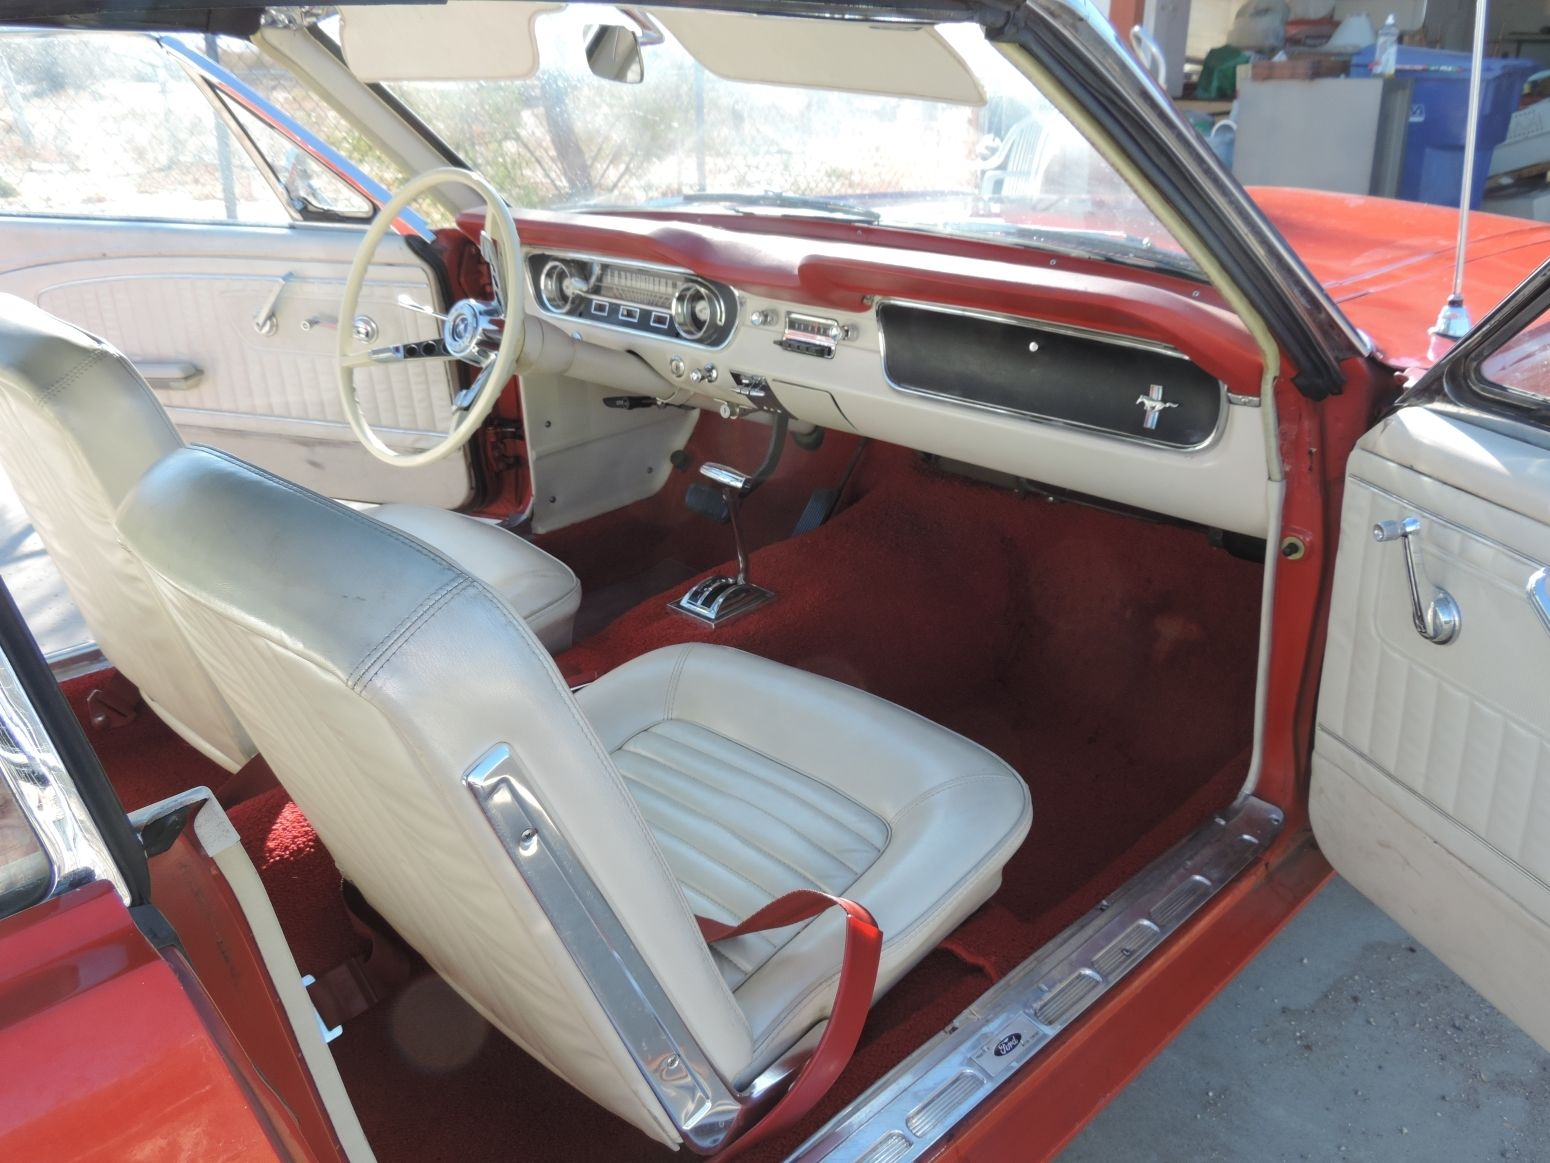 1965 ford mustang convertible red with white interior 51k orig miles califor. Black Bedroom Furniture Sets. Home Design Ideas